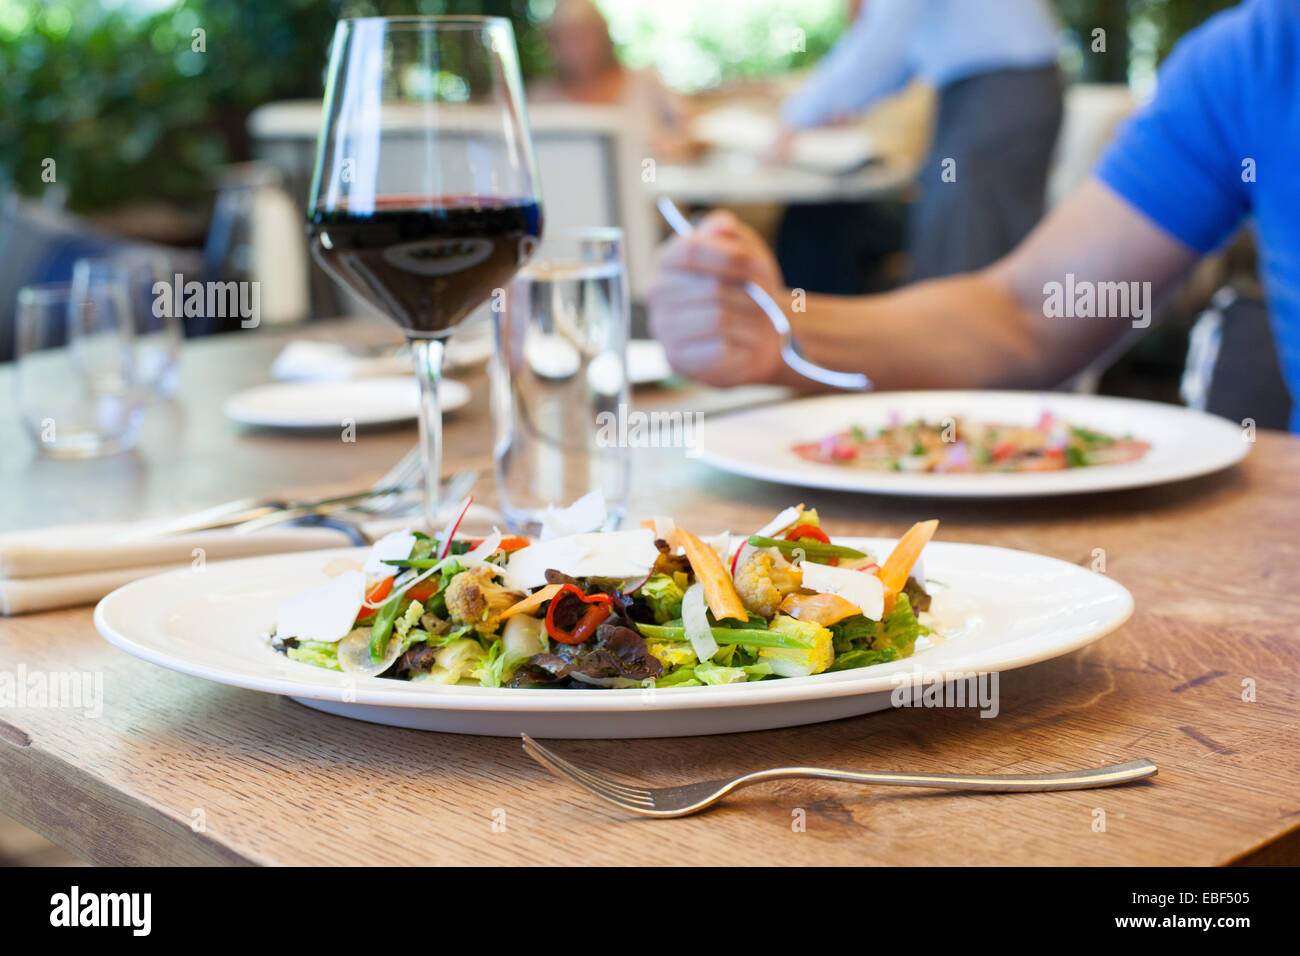 Upscale salads on table in high end restaurant - Stock Image